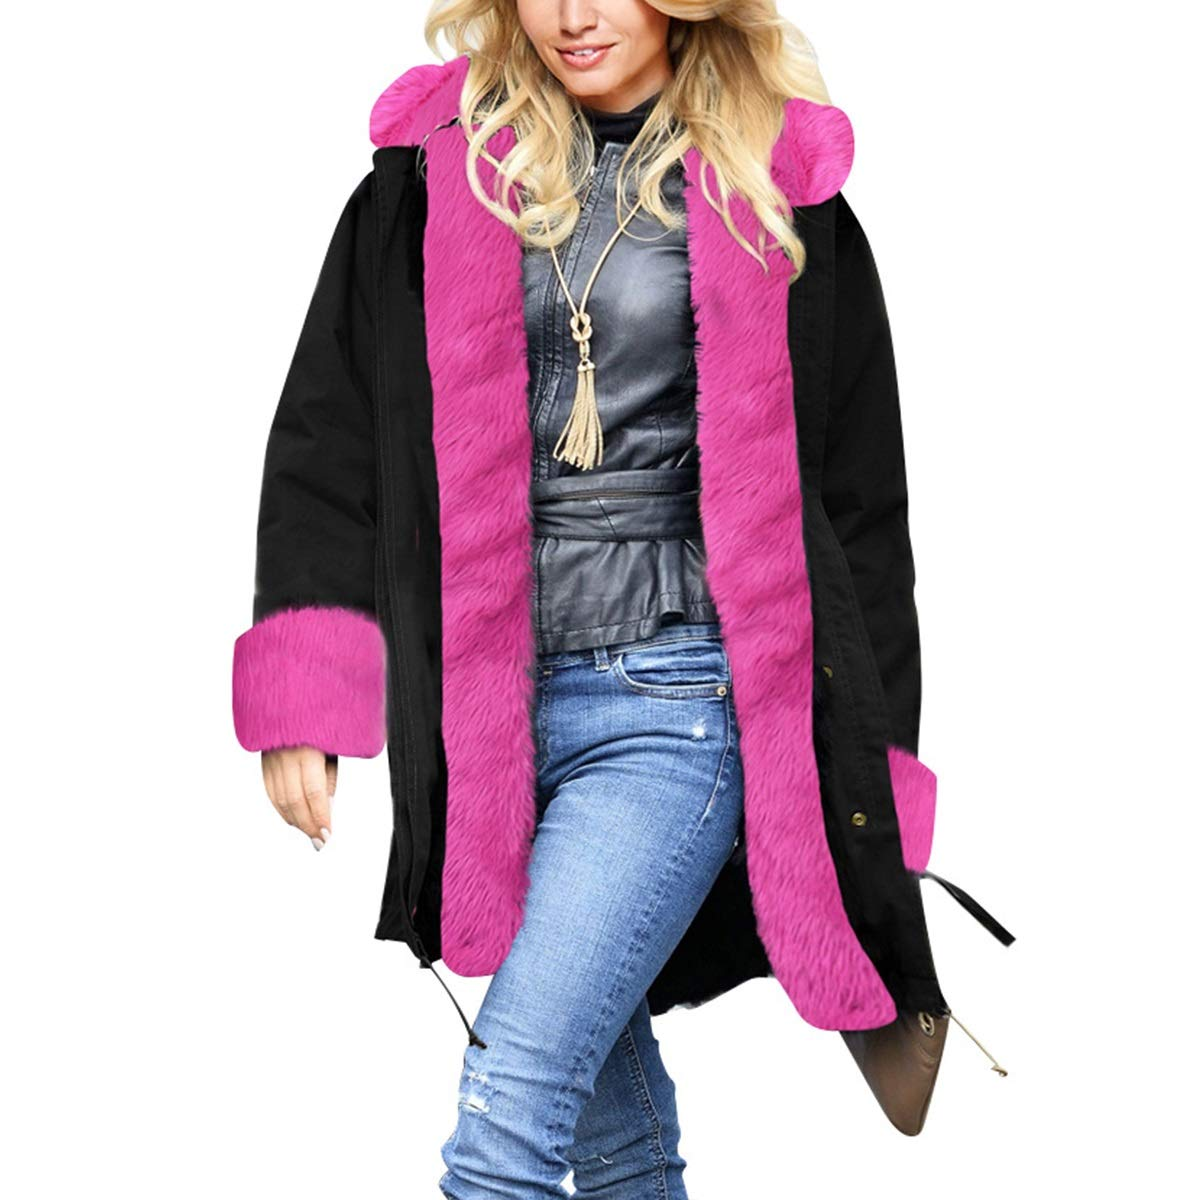 Black1 Womens Winter Warm Thicken Long Sleeve Faux Fur Collar Hooded Parka Jacket Coat